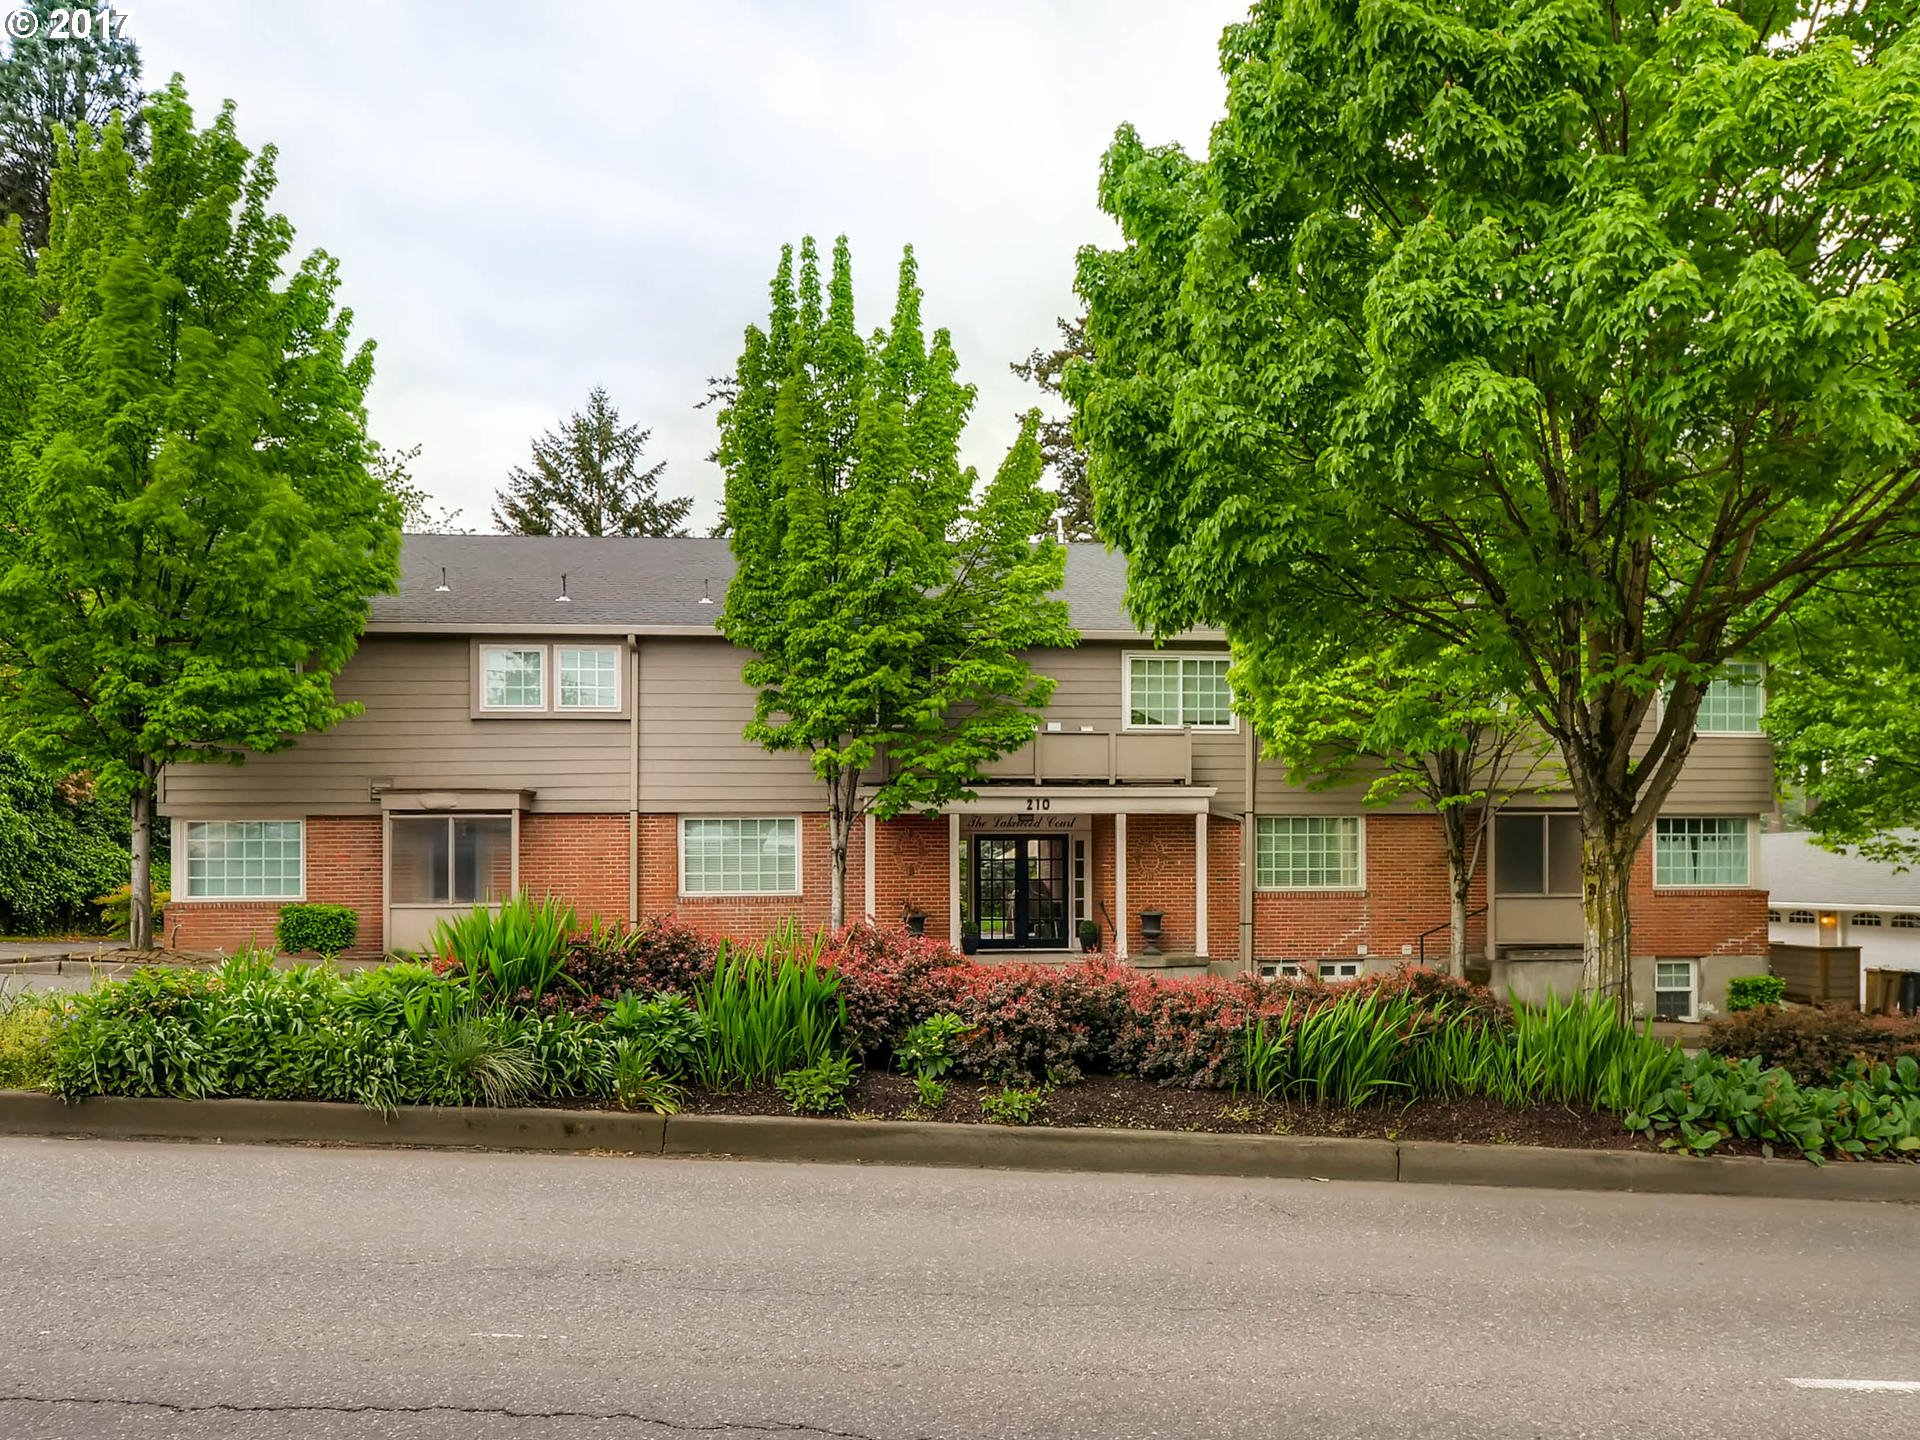 210 S STATE ST 1, Lake Oswego, OR 97034